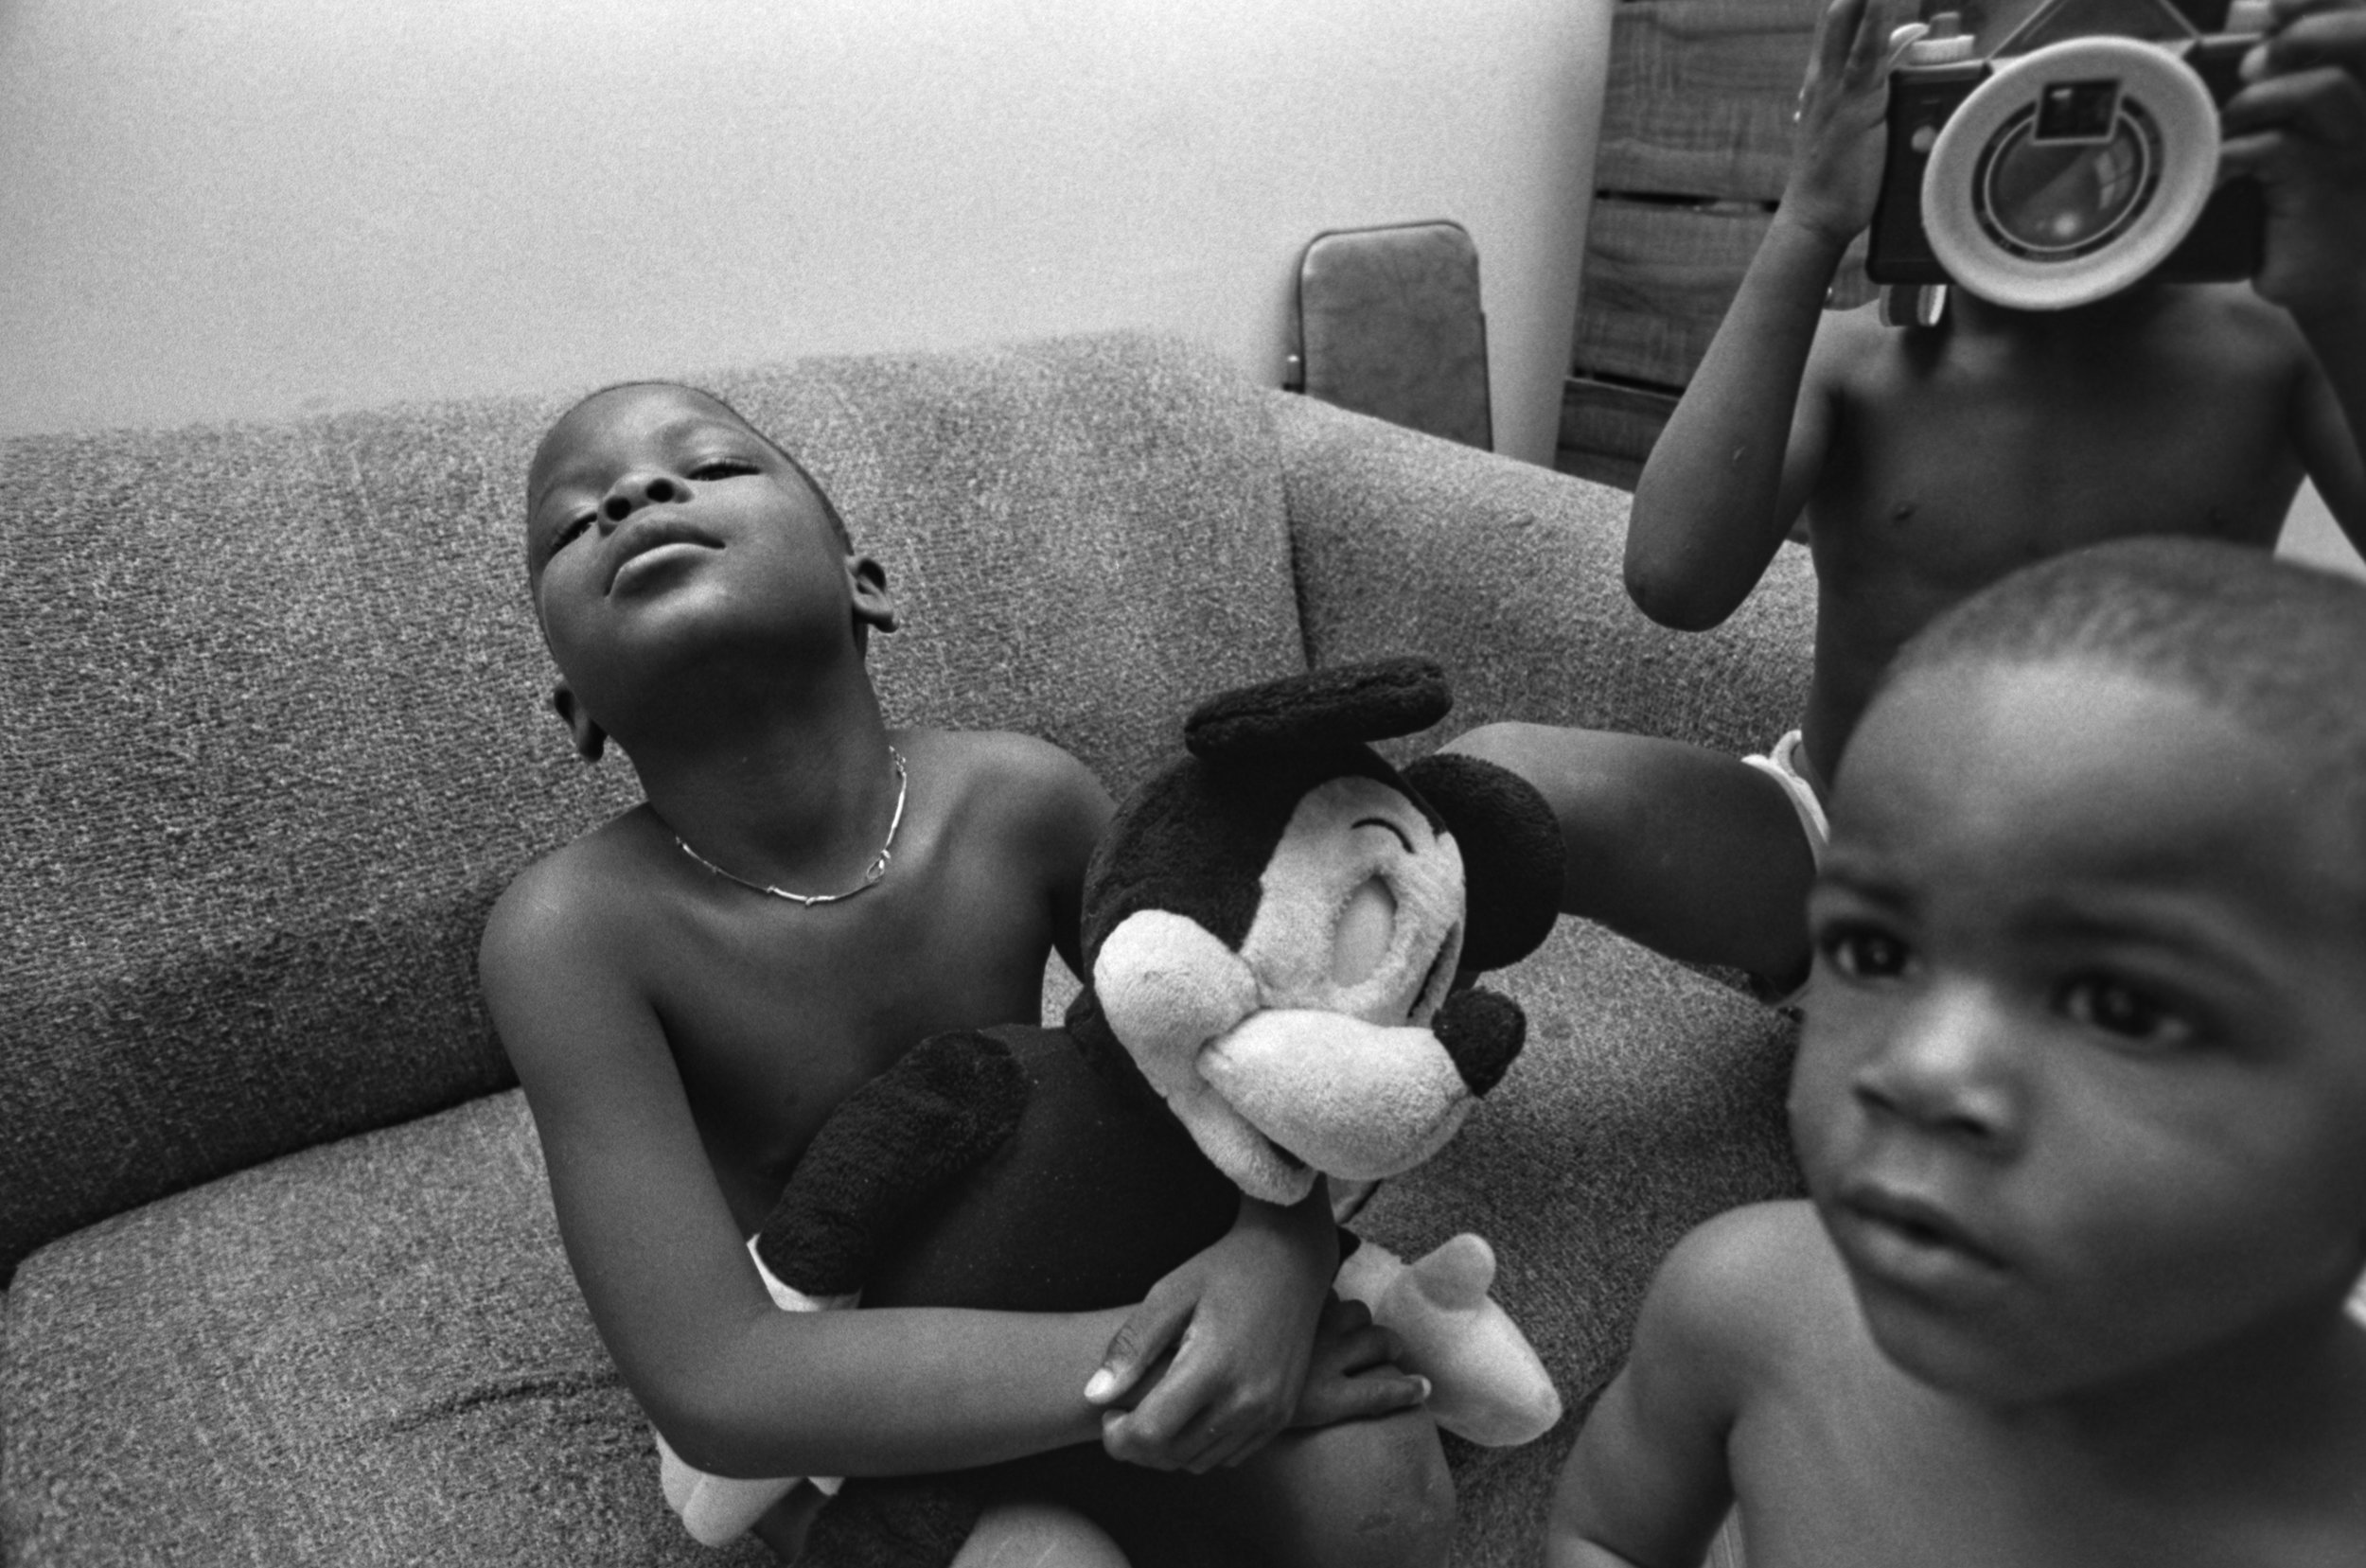 Emergency visit, Harlem, July 1989. Photograph by Larry Racioppo.